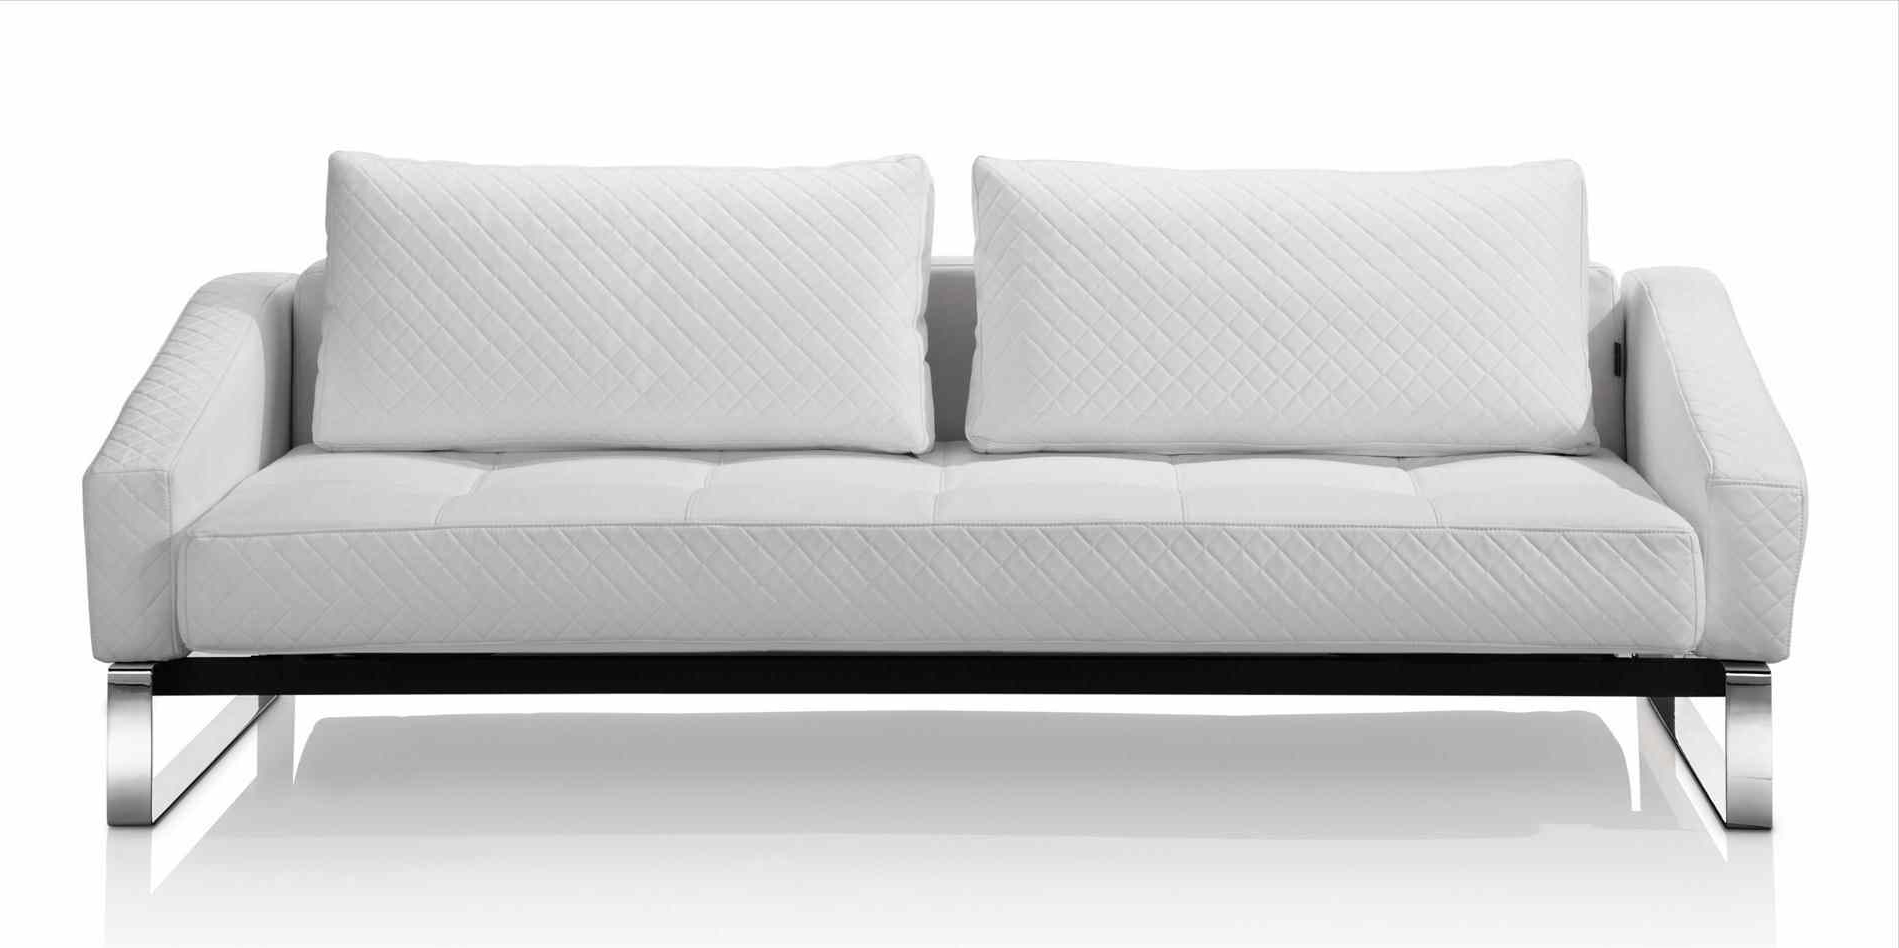 Well Known Sofa : Sofa Background White Modern Couch Amazing For Colette Gray Regarding White Modern Sofas (View 5 of 20)